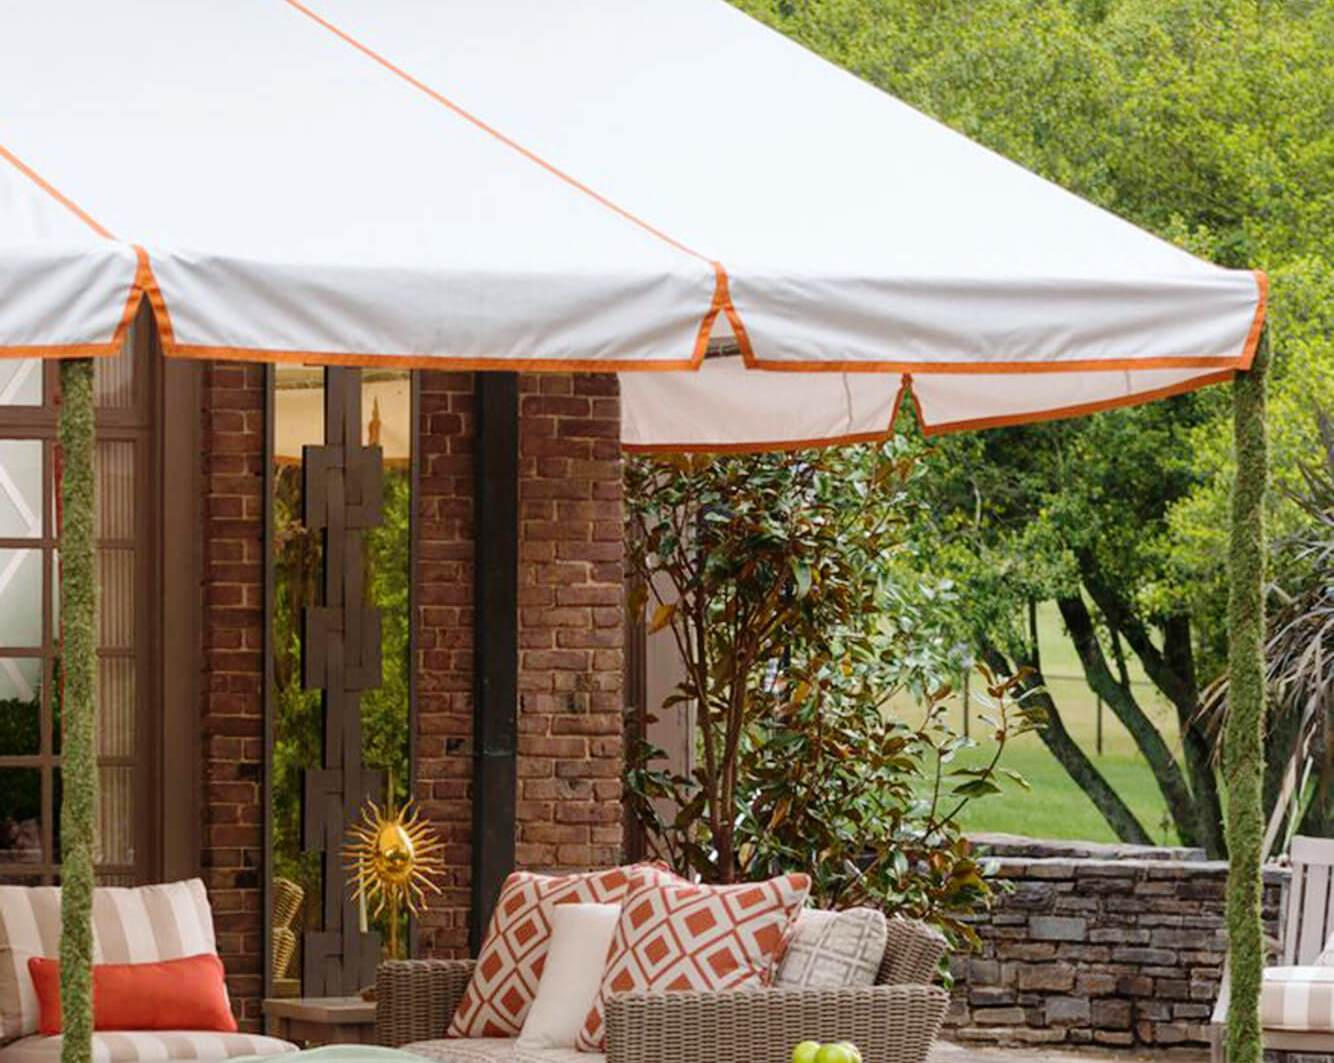 Awnings & Outdoor Living - Westside Canvas & Manufacturing